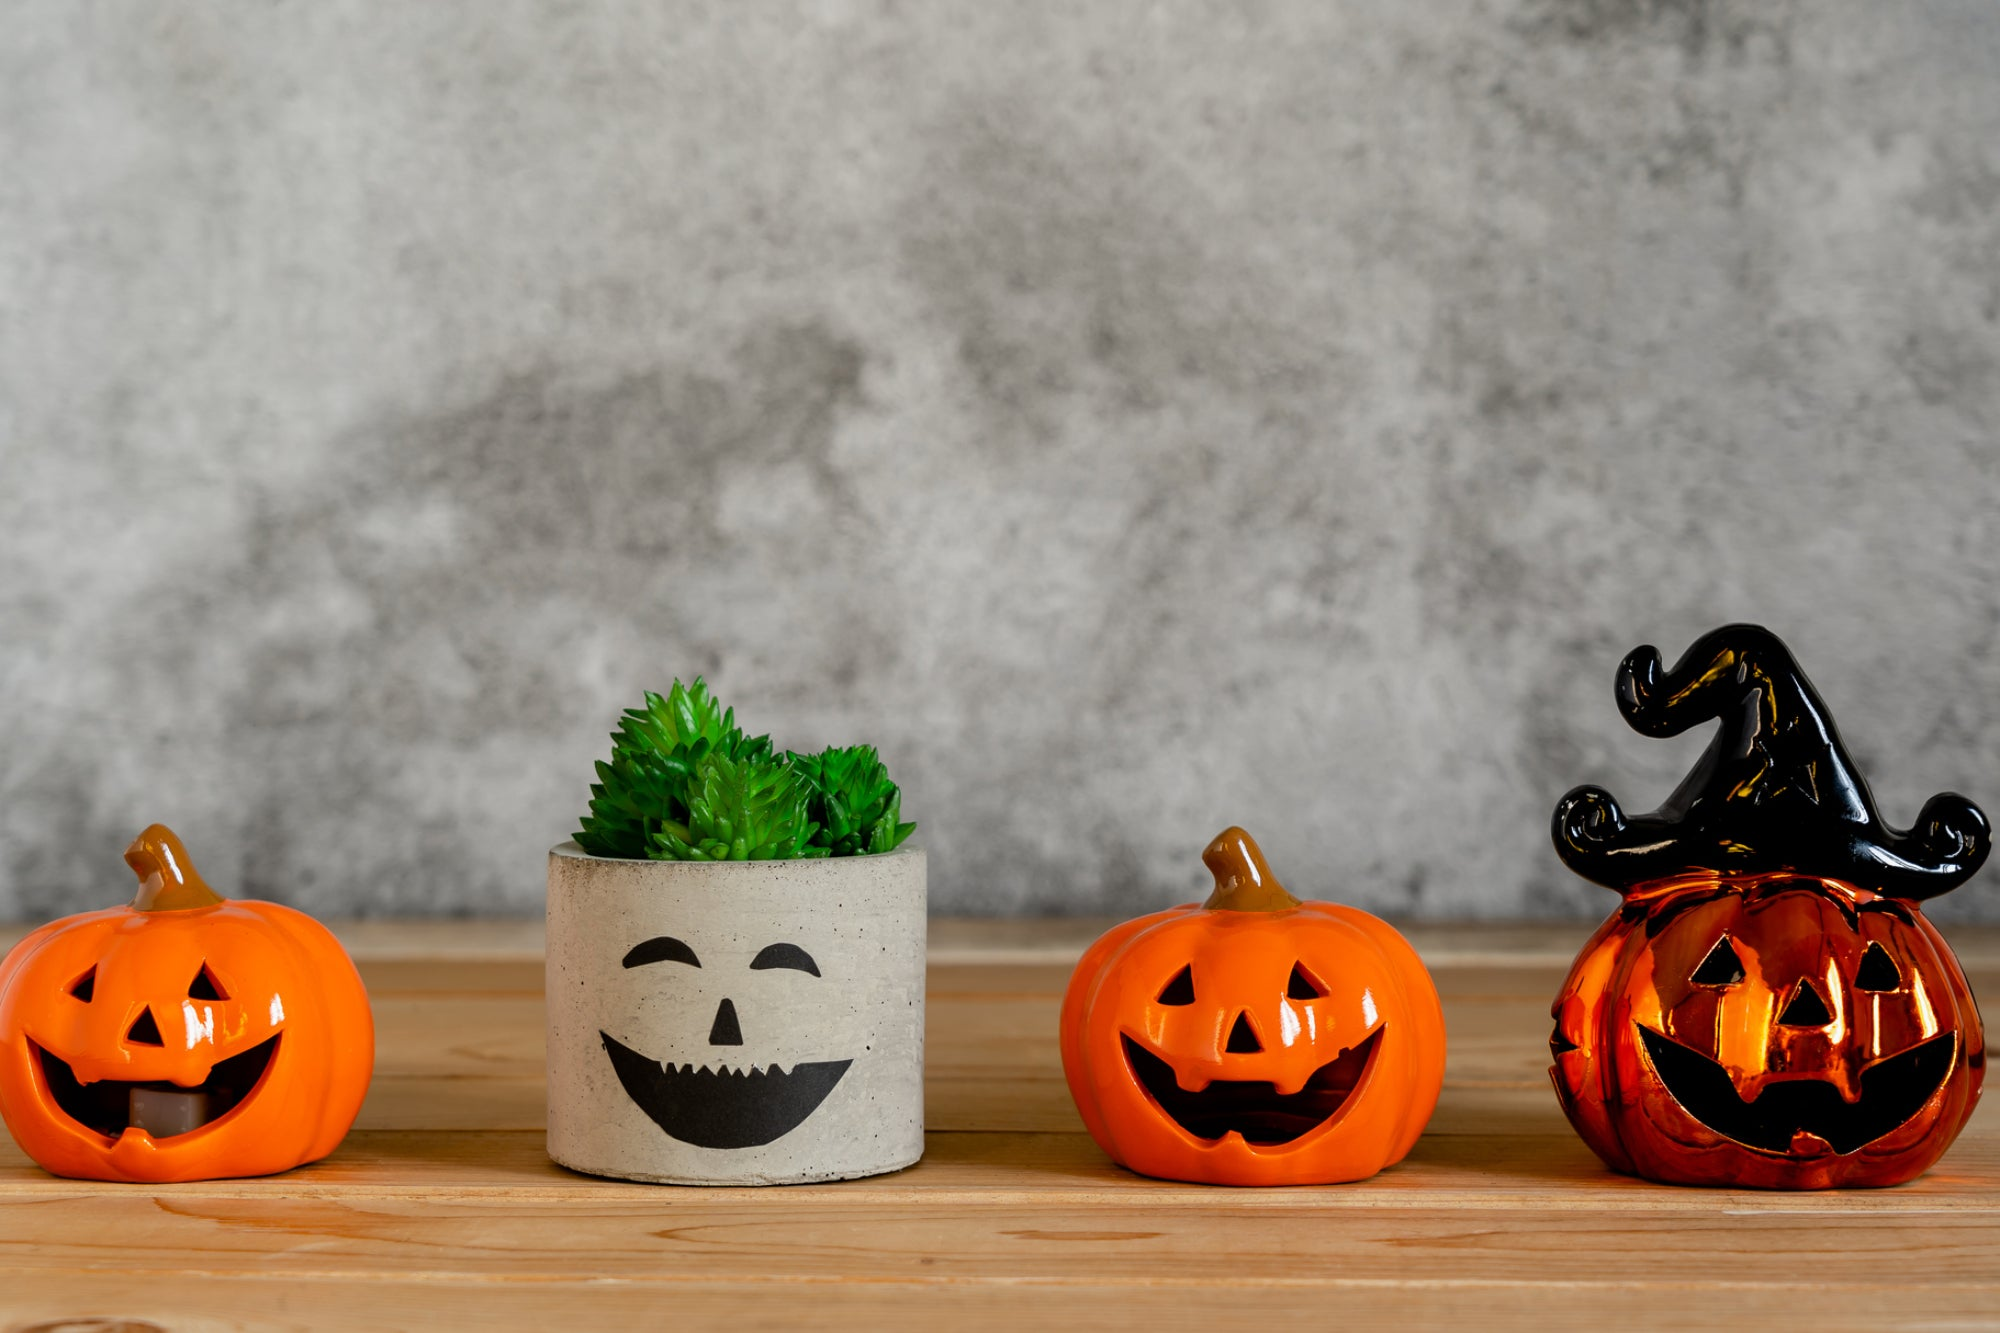 , 6 Tricks To Implement That Will Give Your Business Treats This Halloween, Saubio Making Wealth